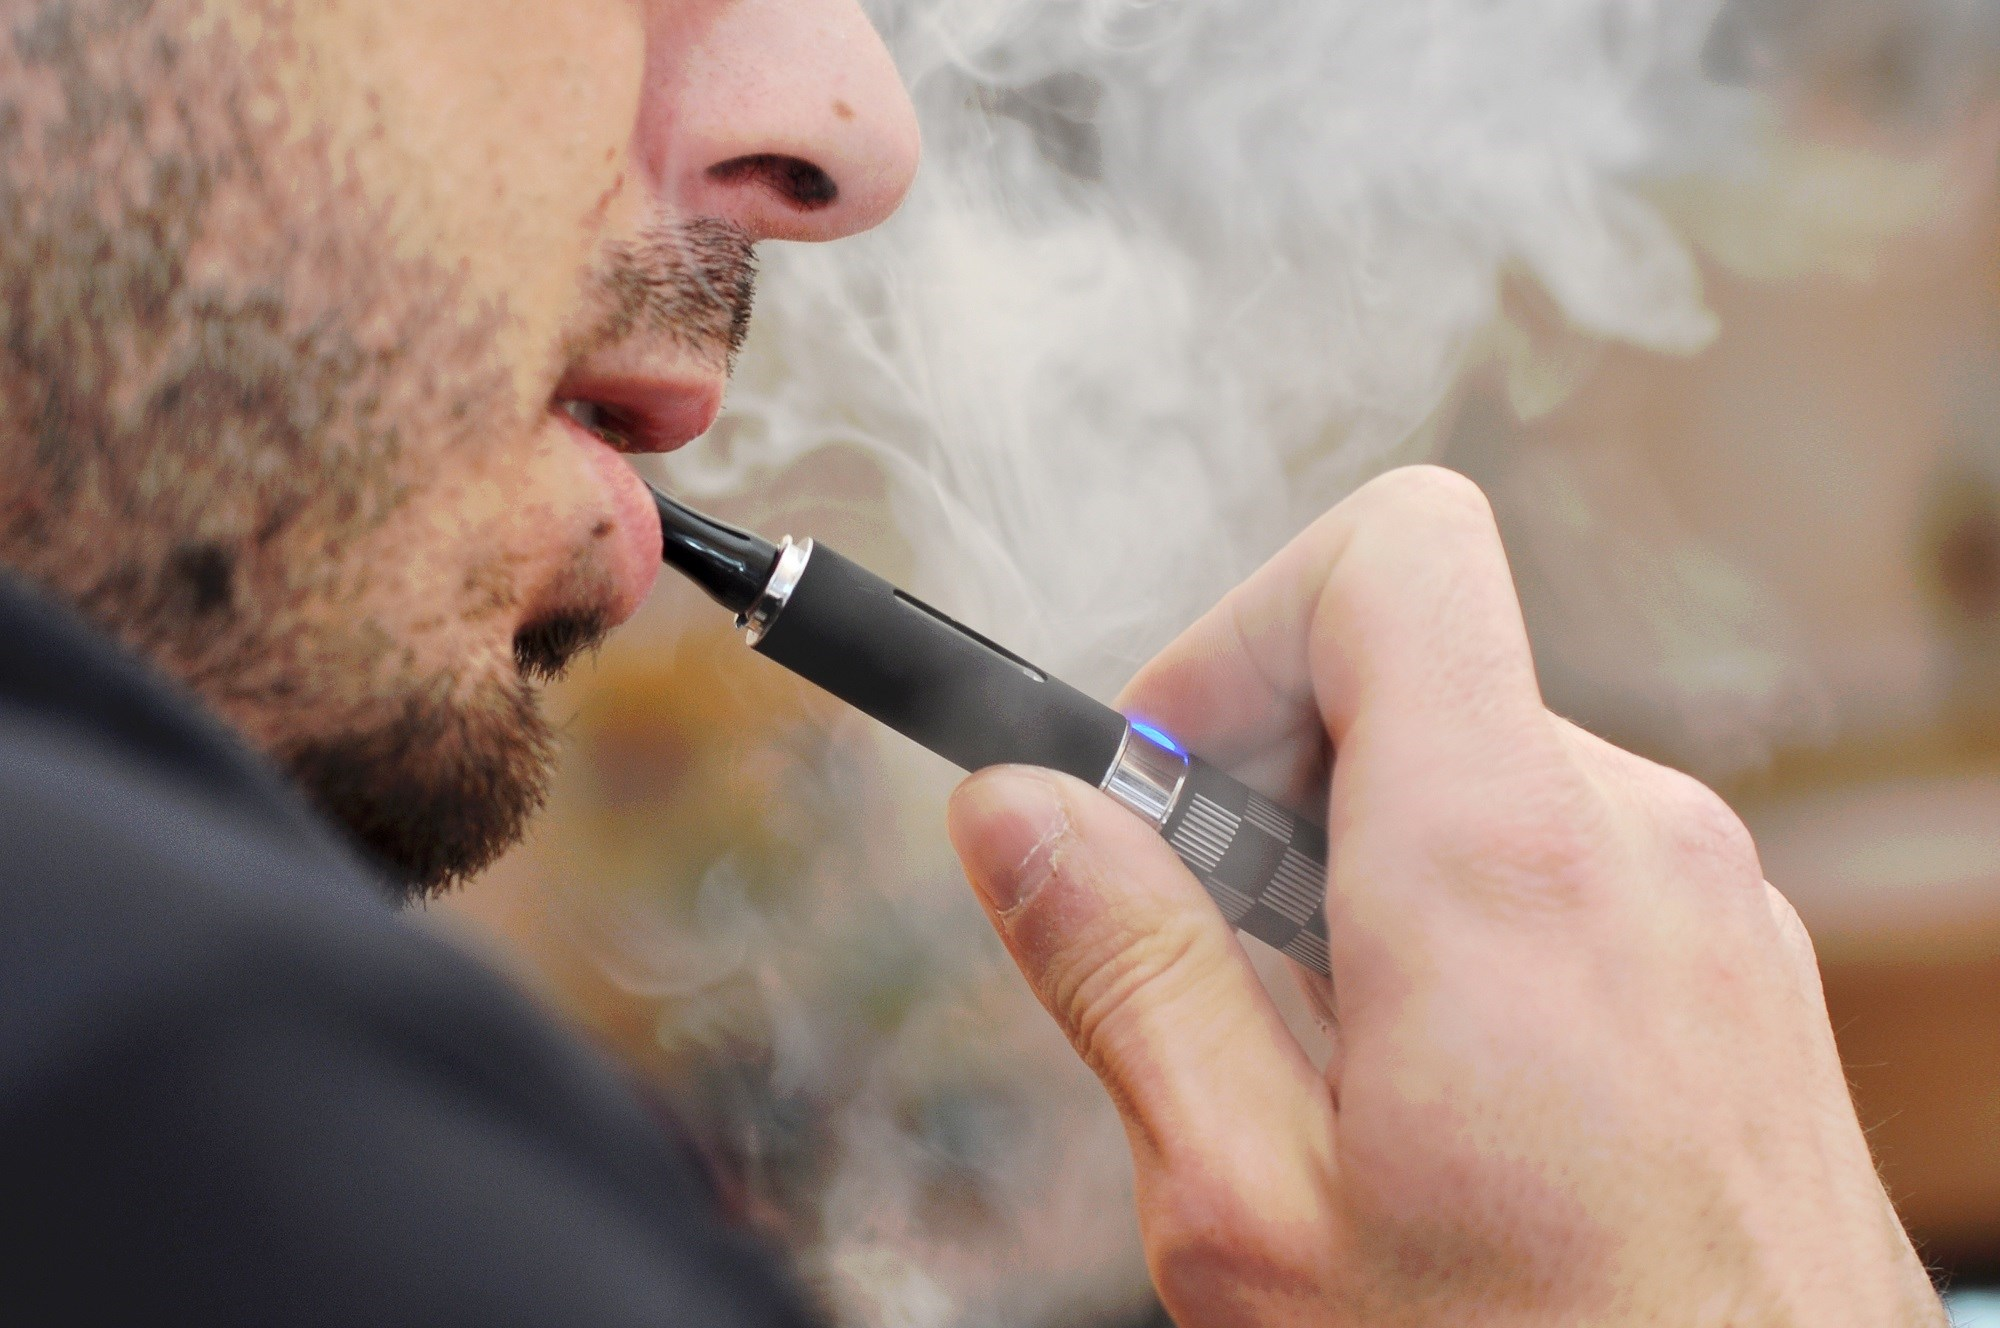 E-Cigarettes Don't Seem to Aid Smoking Cessation Efforts